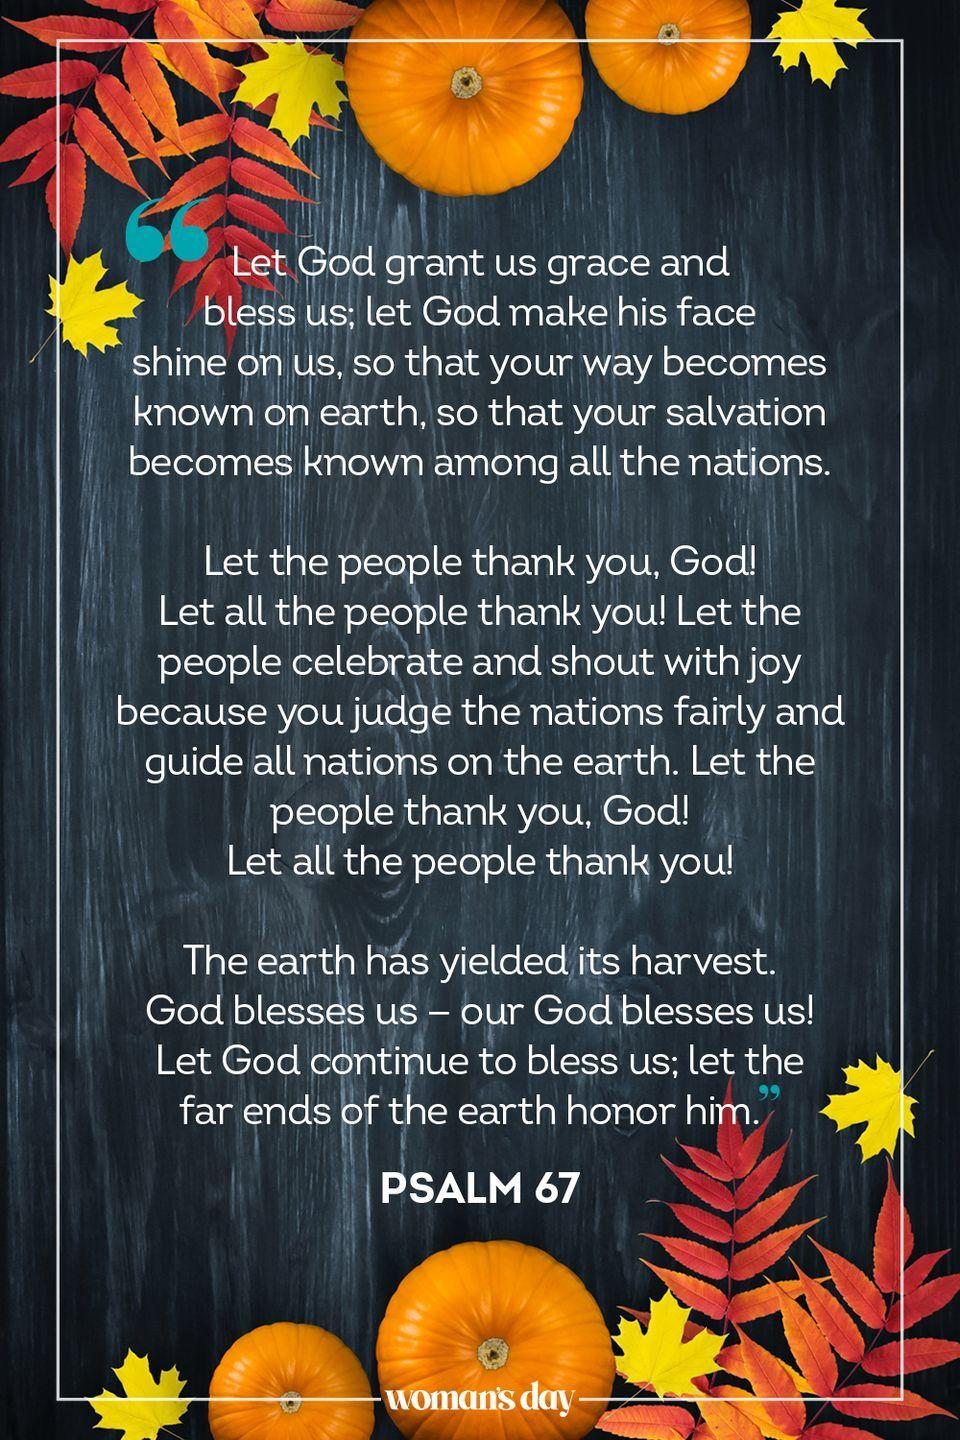 "<p>""Let God grant us grace and bless us; let God make his face shine on us, so that your way becomes known on earth, so that your salvation becomes known among all the nations.</p><p>Let the people thank you, God! Let all the people thank you! Let the people celebrate and shout with joy because you judge the nations fairly and guide all nations on the earth. Let the people thank you, God! Let all the people thank you!</p><p>The earth has yielded its harvest. God blesses us — our God blesses us! Let God continue to bless us; let the far ends of the earth honor him."" — Psalm 67</p>"